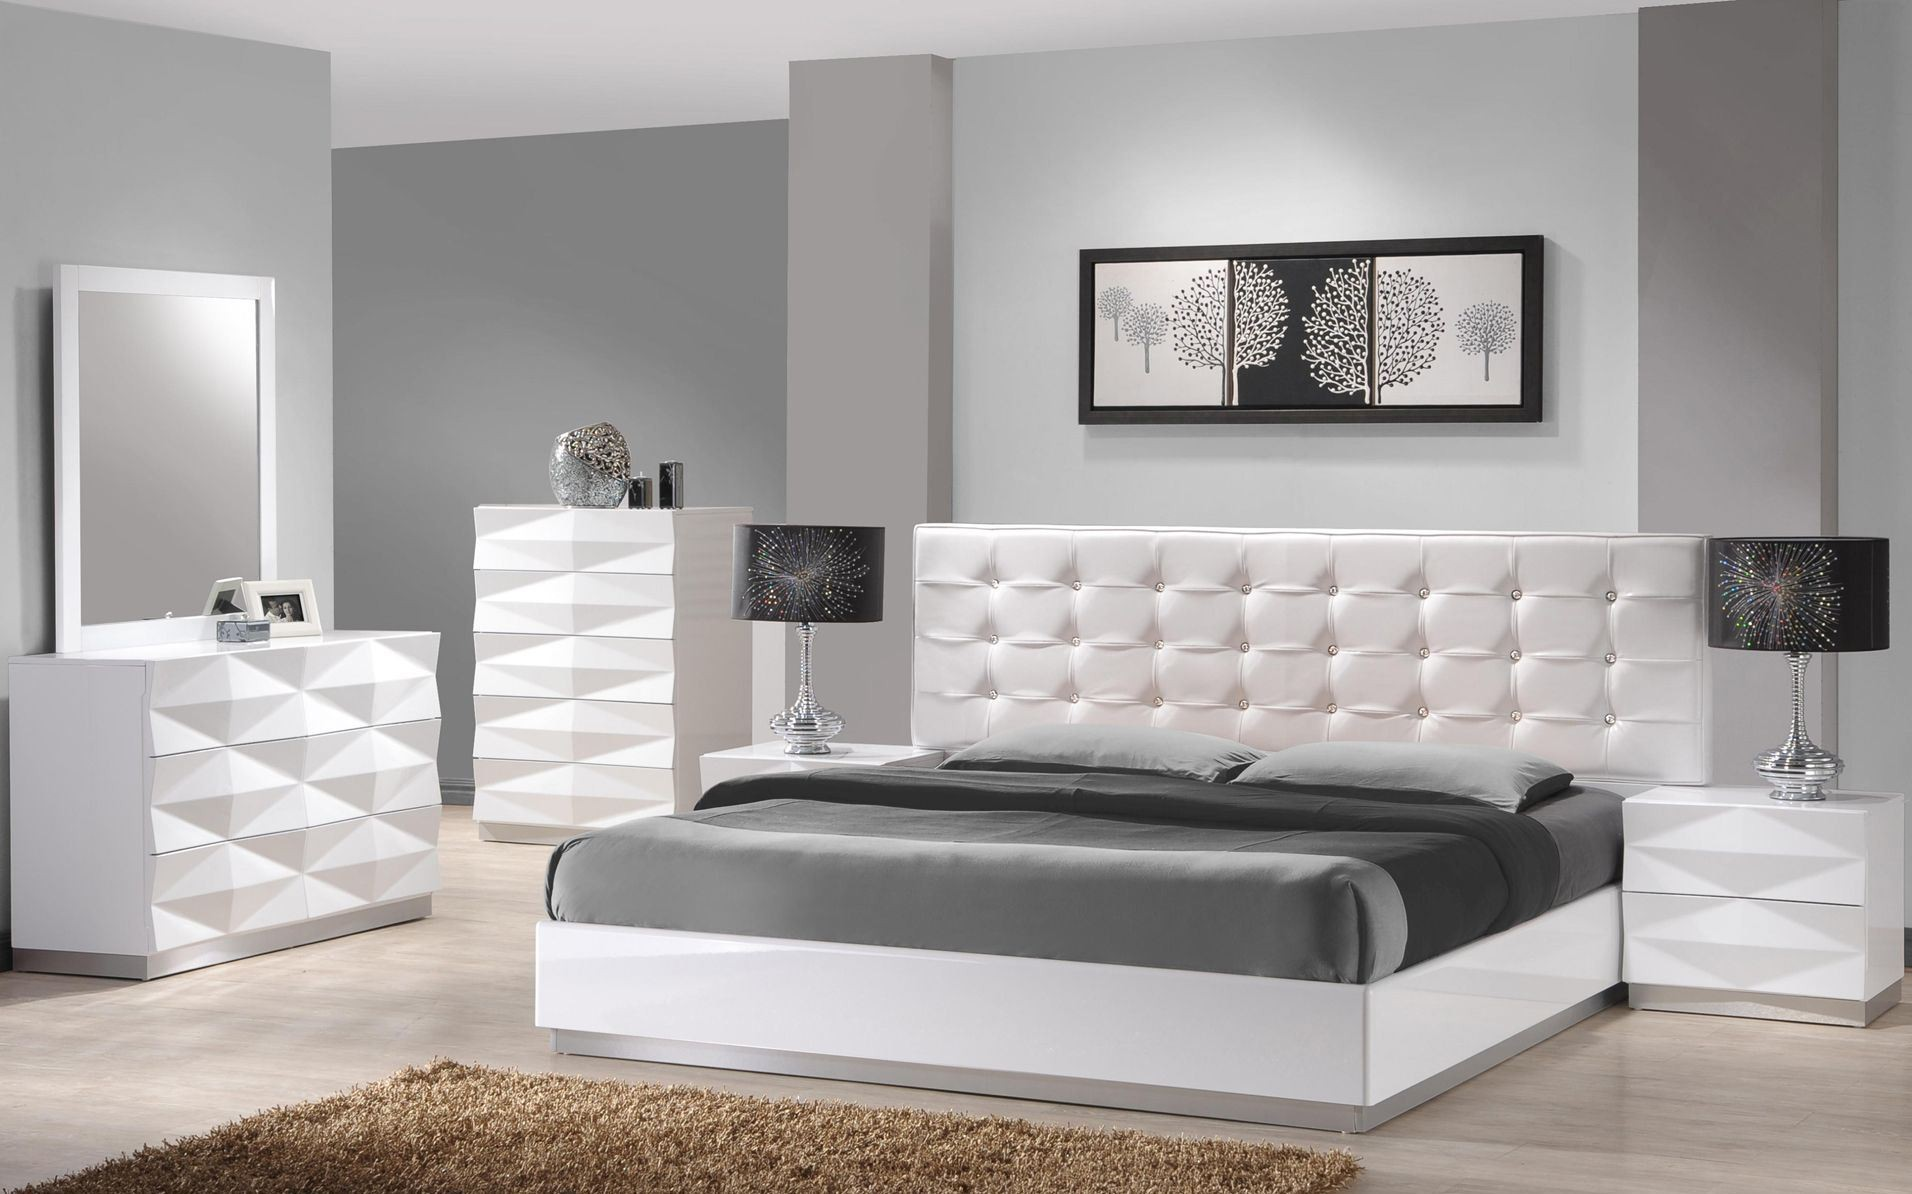 Verona White Lacquer Youth Platform Bedroom Set From J M 17688 F Coleman Furniture